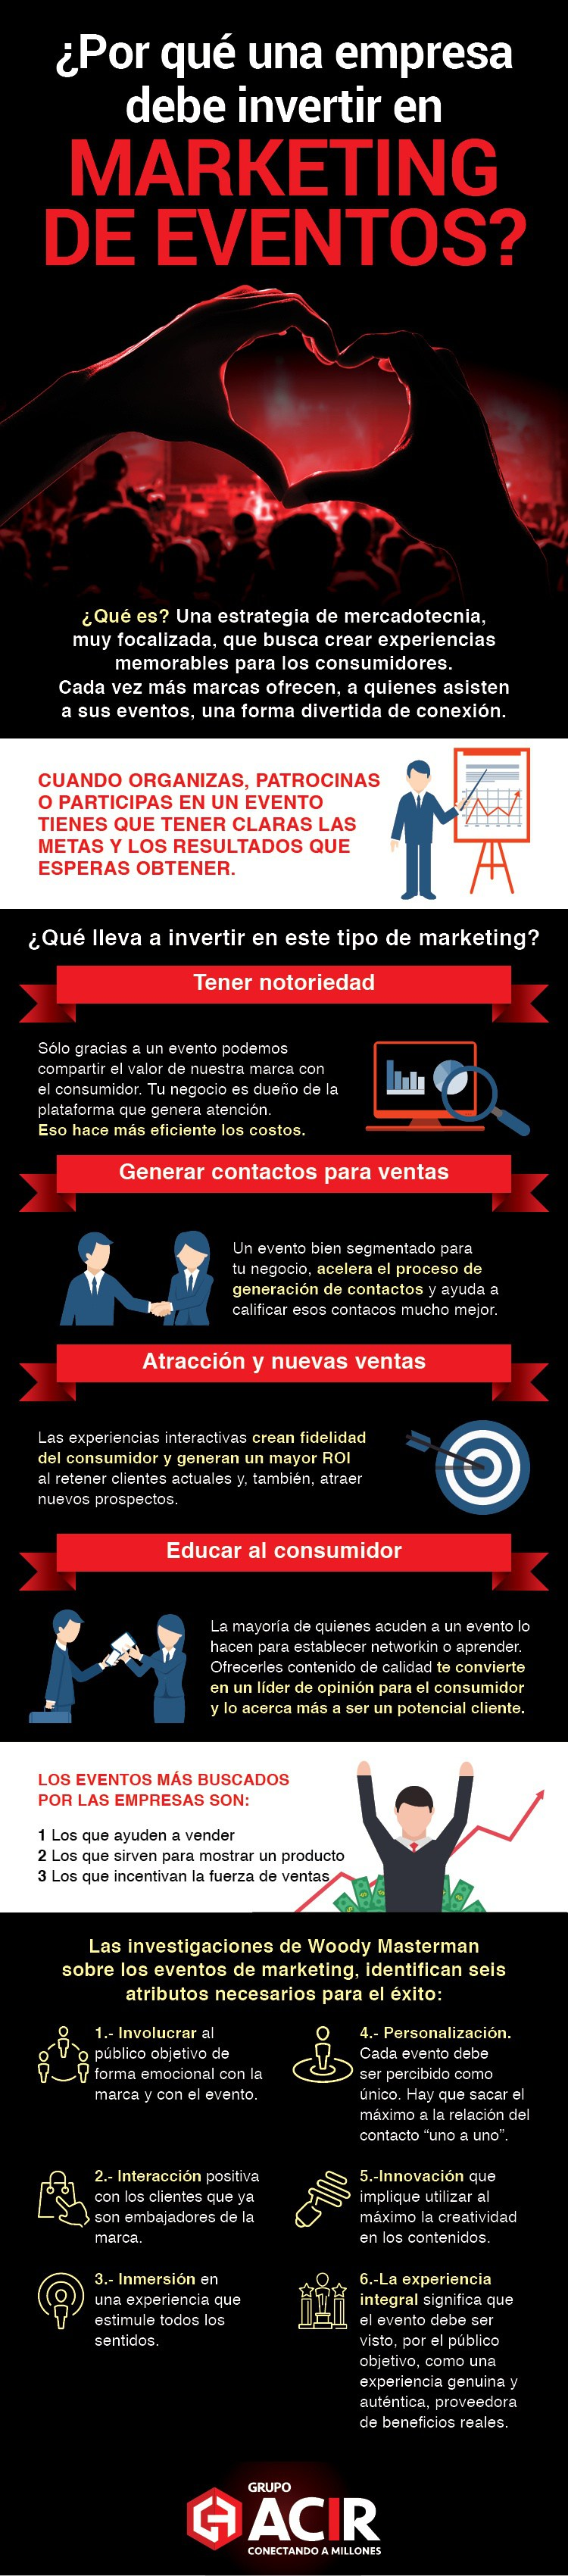 Infografía sobre Inbound Marketing